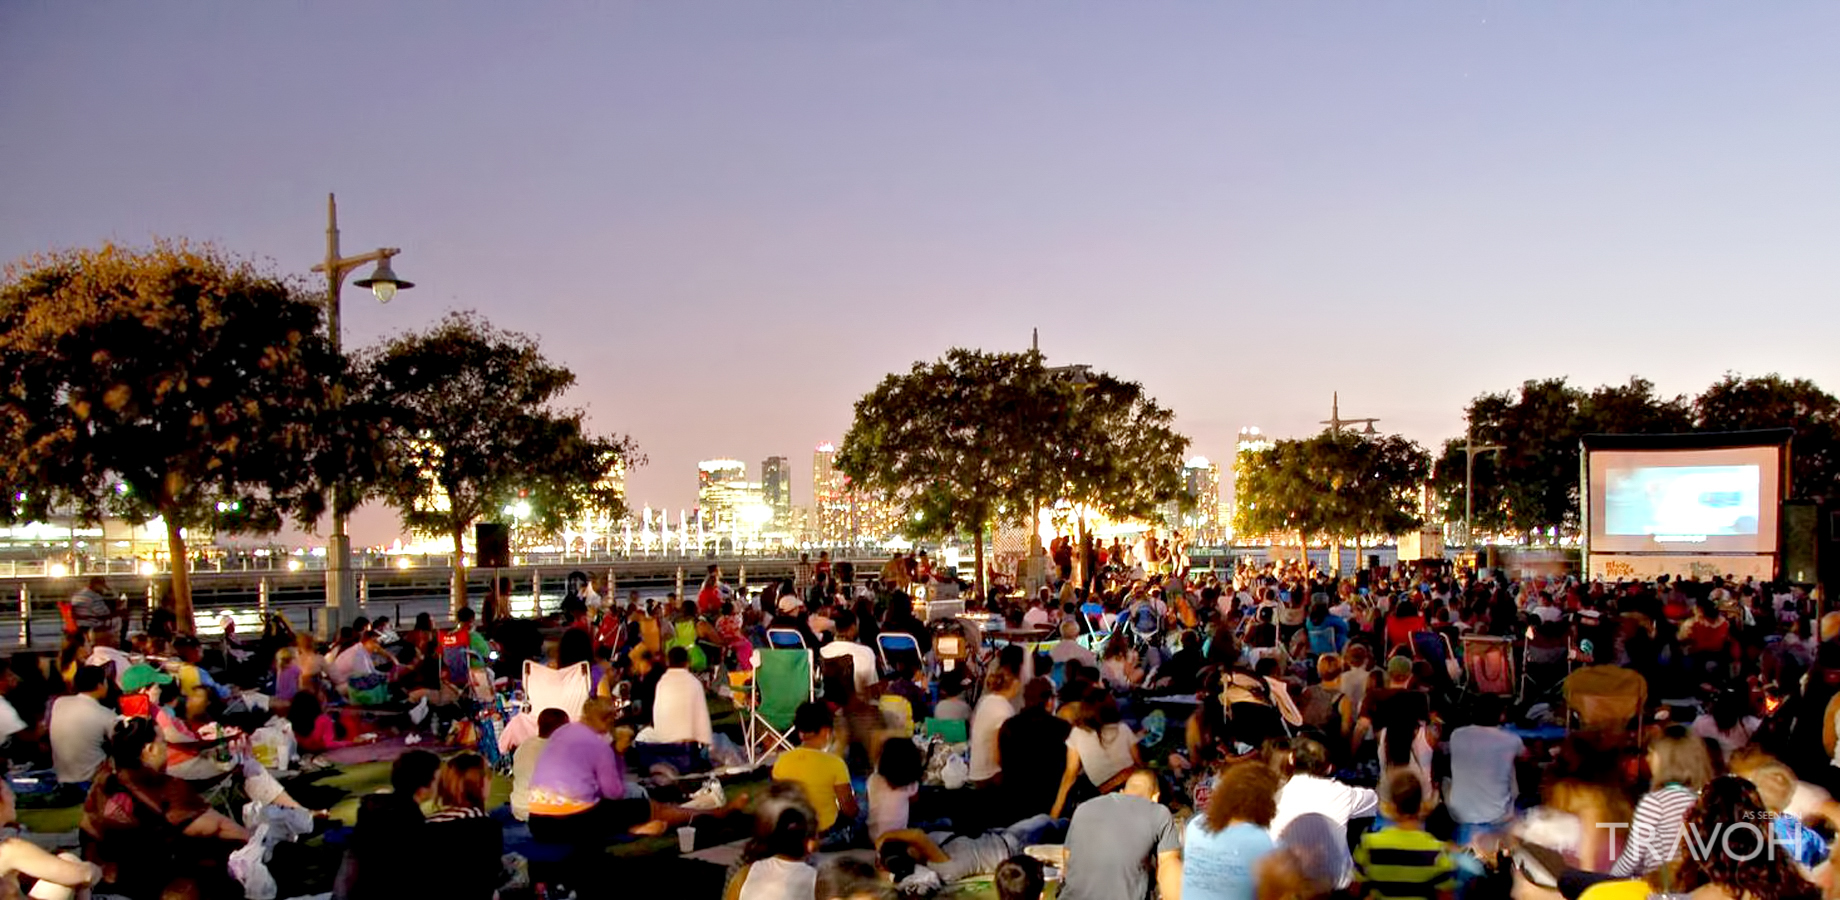 Catch a Movie at Hudson River Park